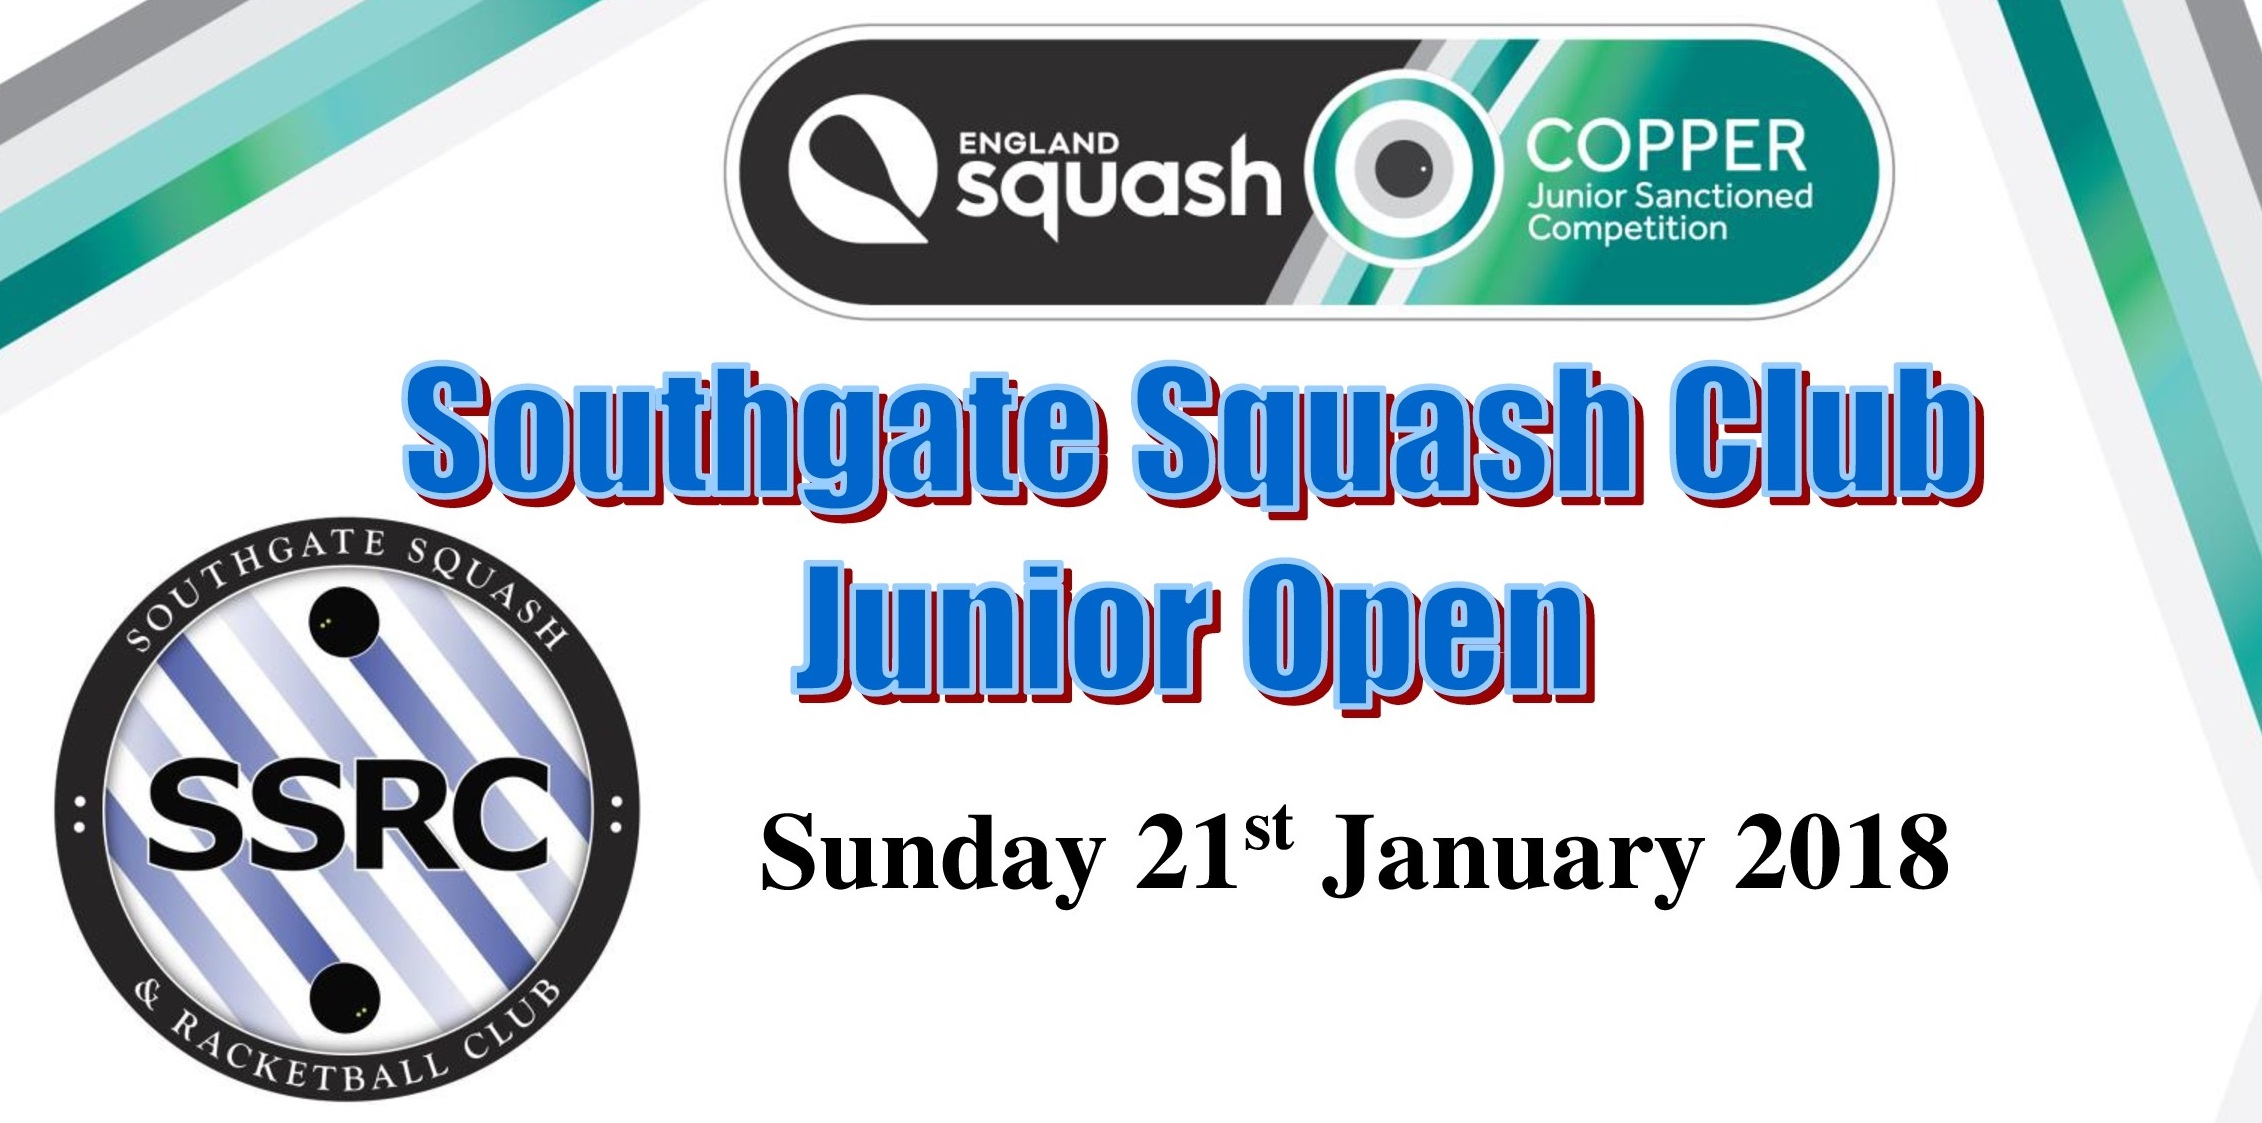 Southgate Squash Club Hosts one of the first England Squash Cooper Tournaments of 2018